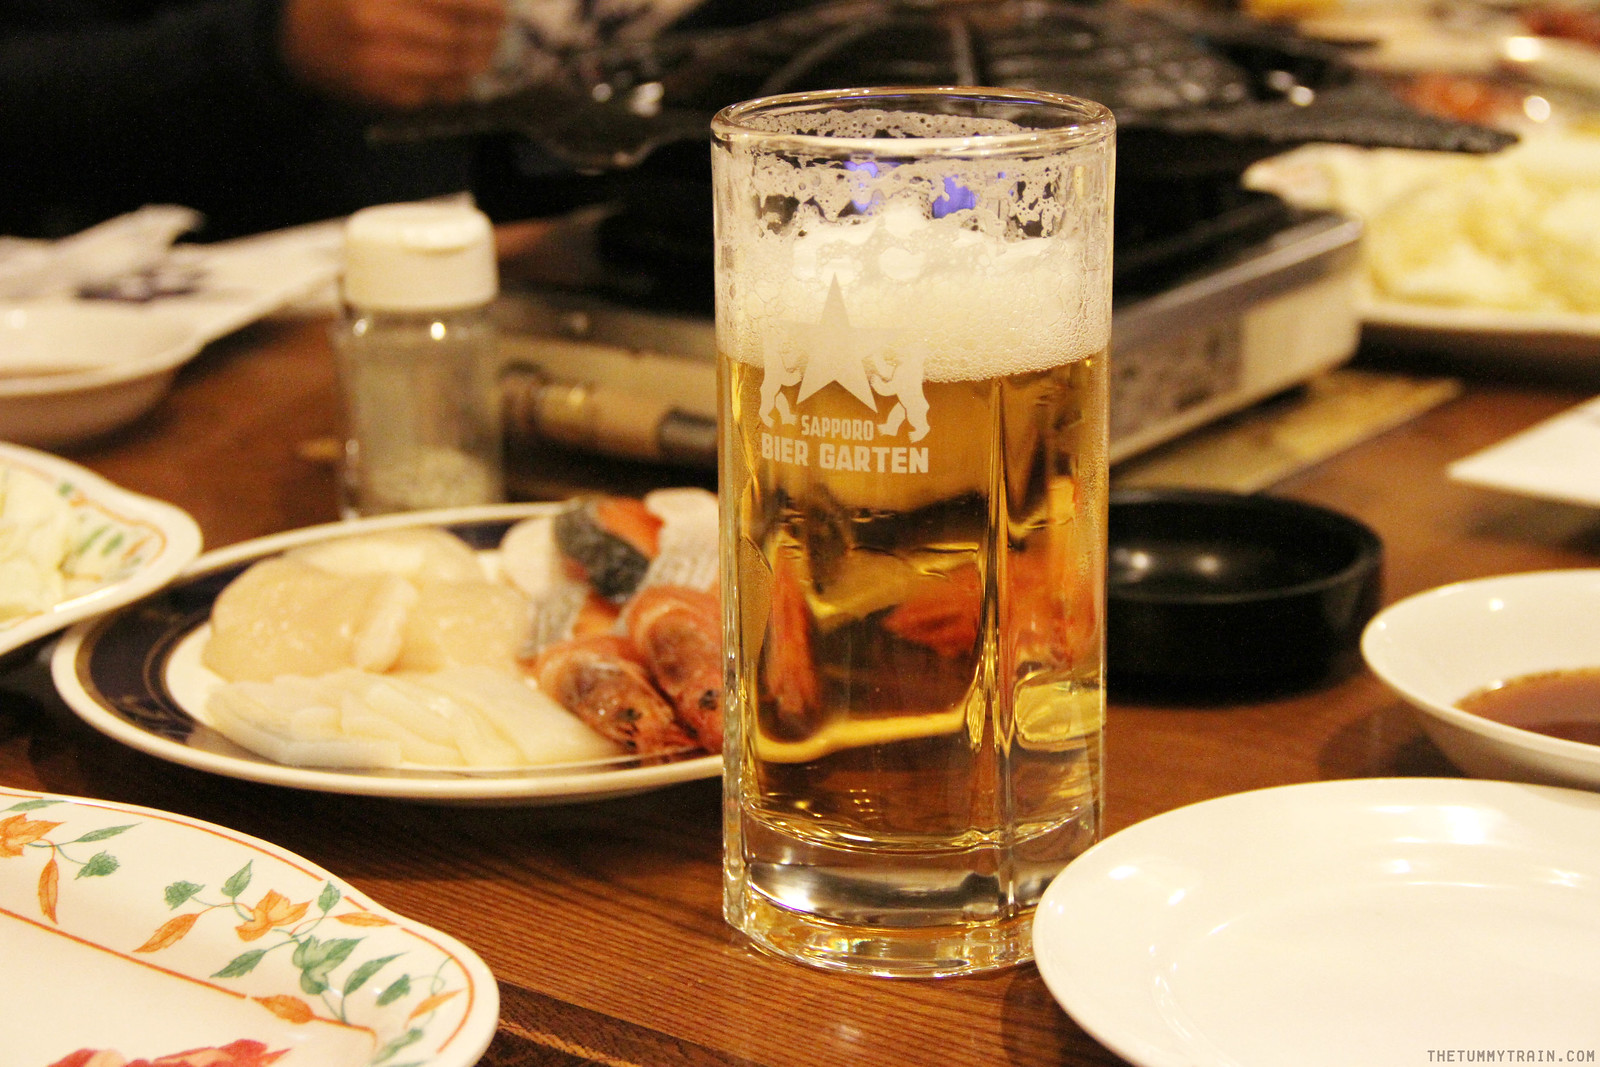 32126969584 c834cb6e34 h - 7 Foodie Experiences To Try for Your Sapporo Adventure